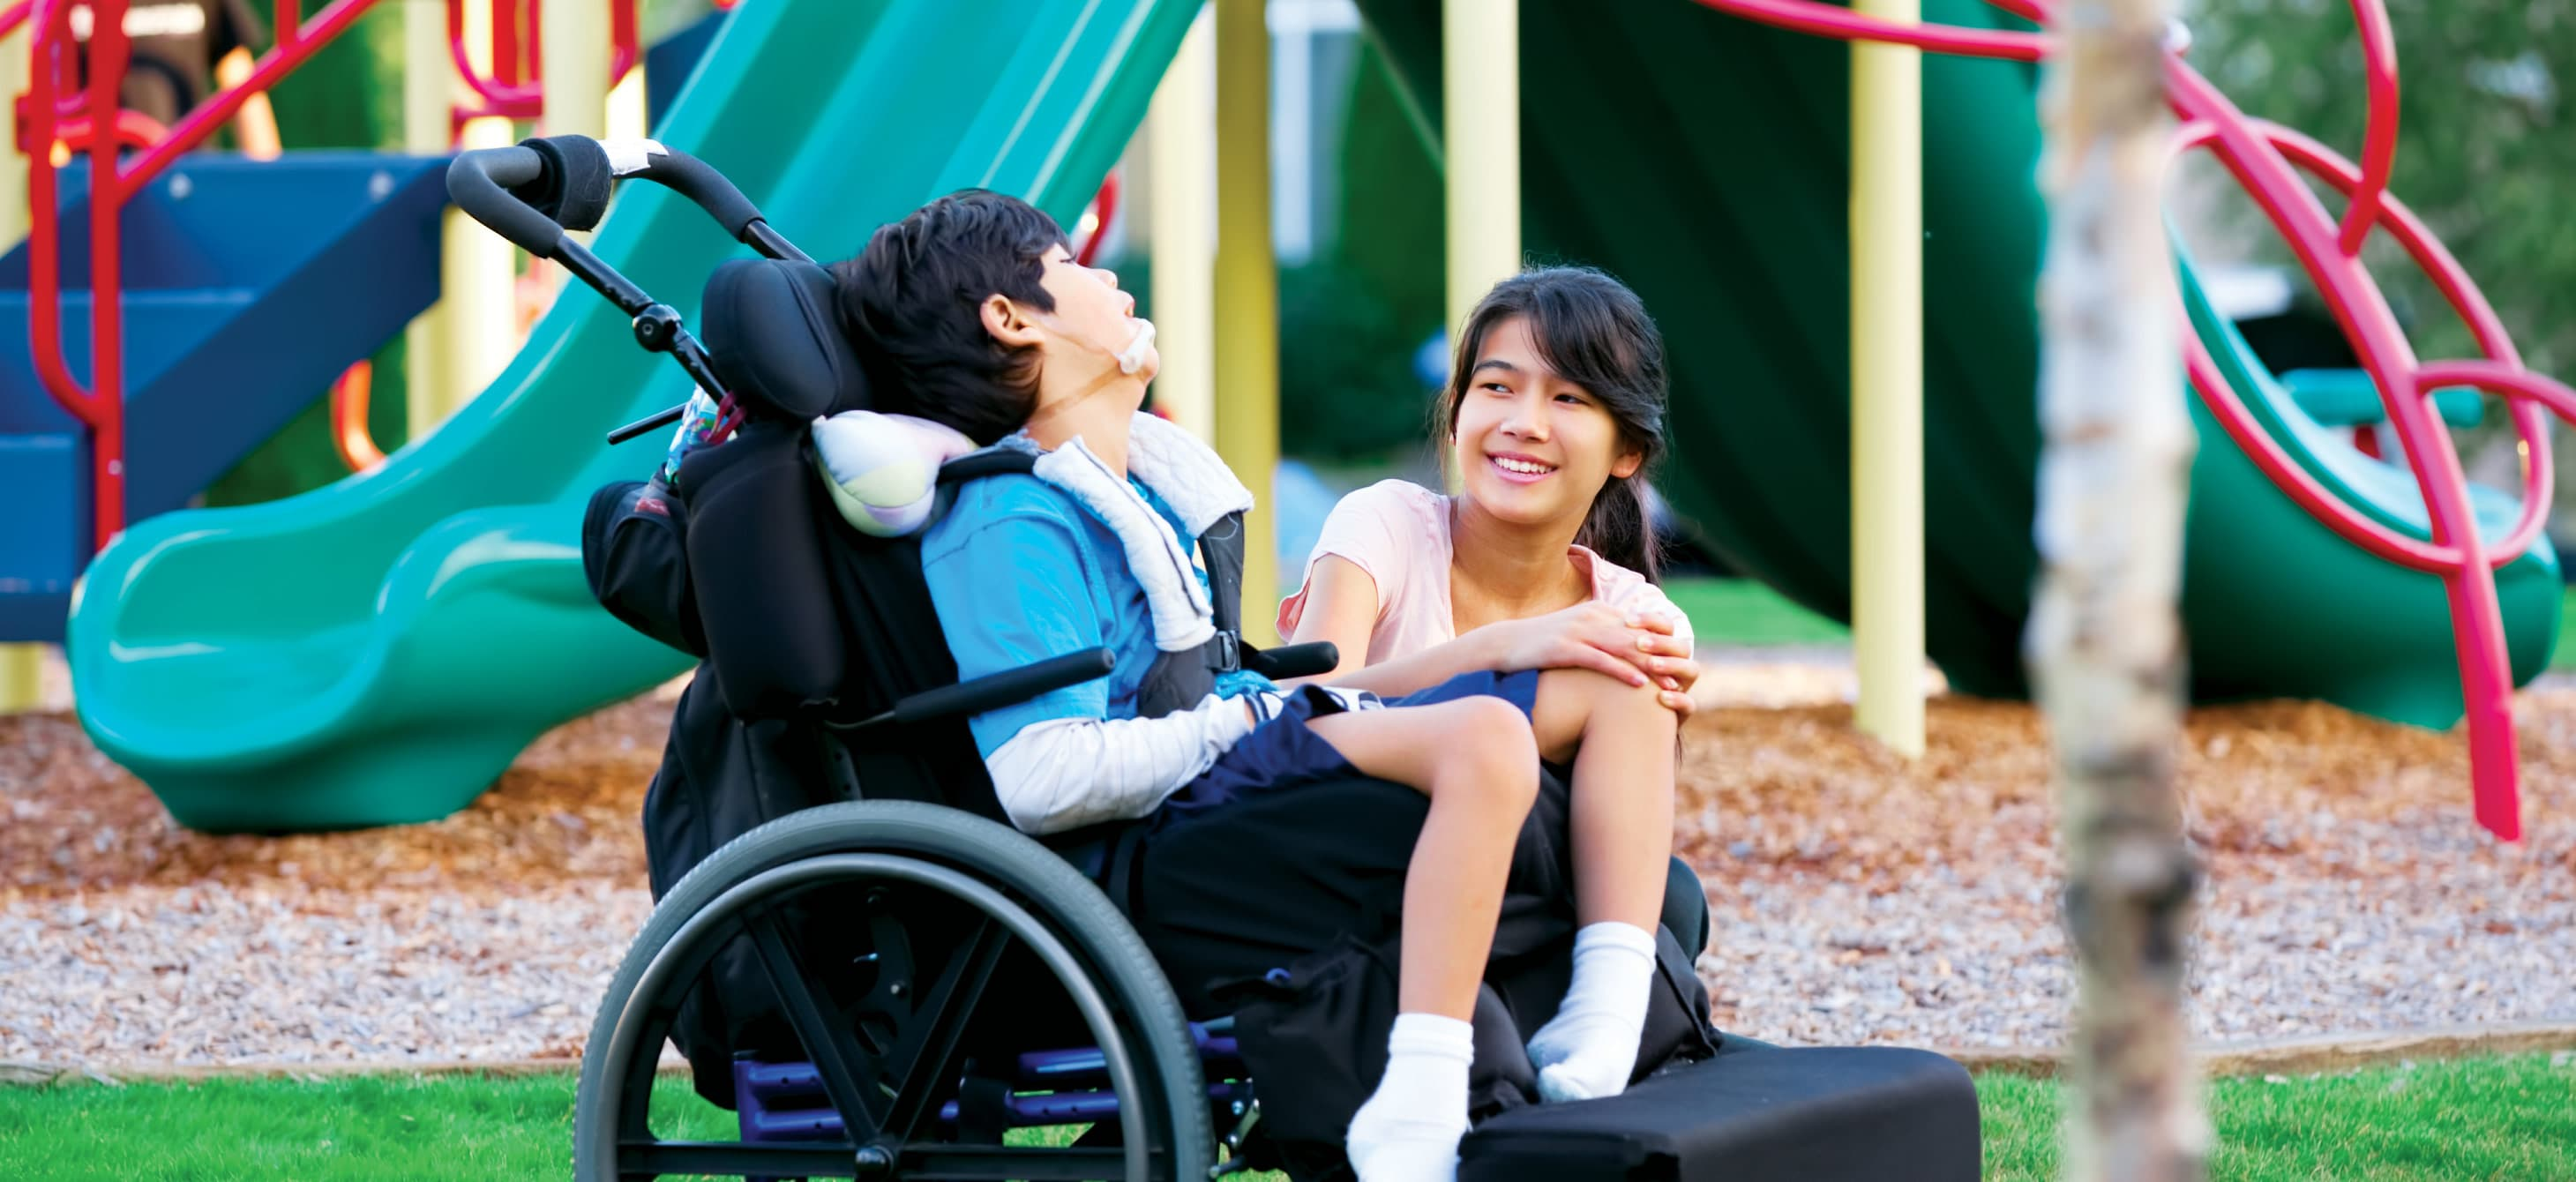 a child using a wheelchair and another child hanging out in a playground